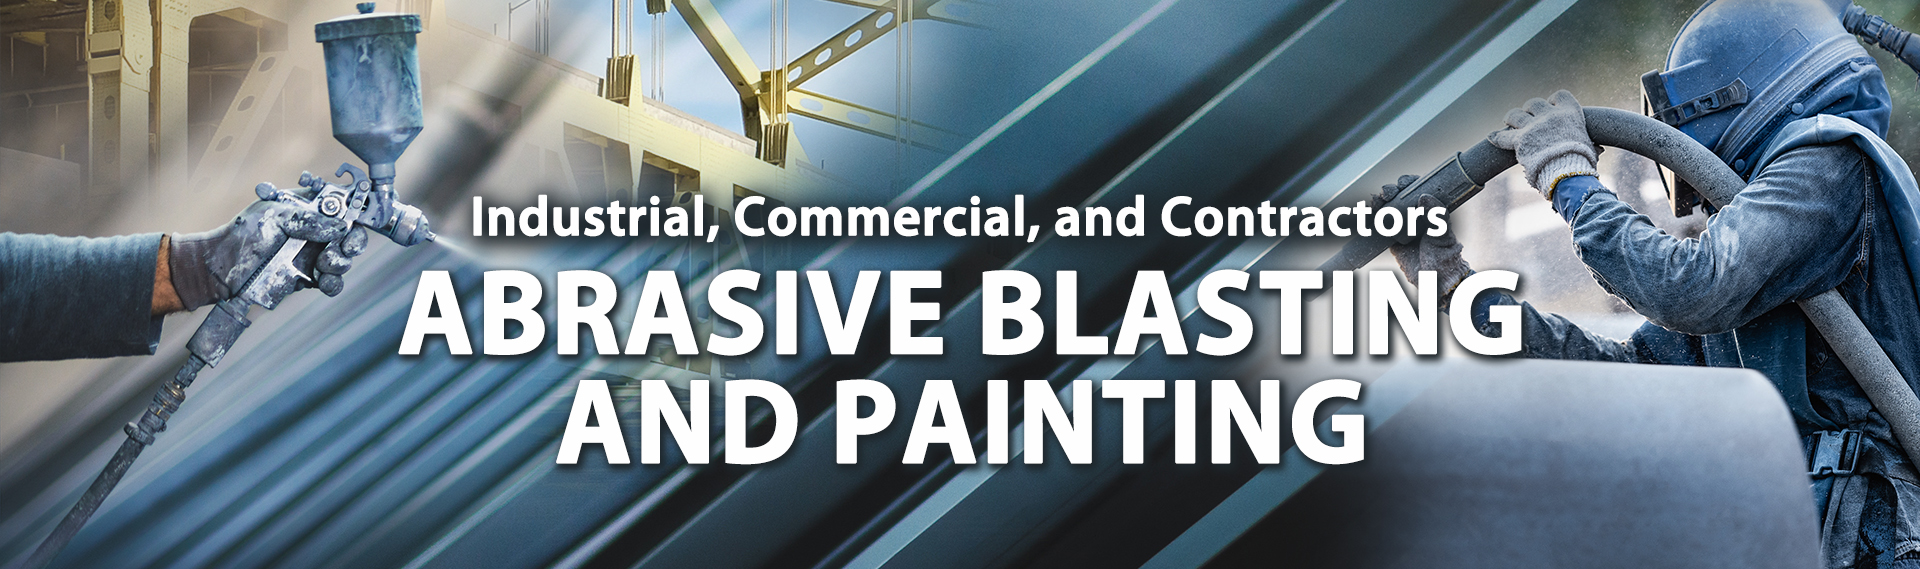 Industrial, Commercial, and Contractors Abrasive Blasting and Painting